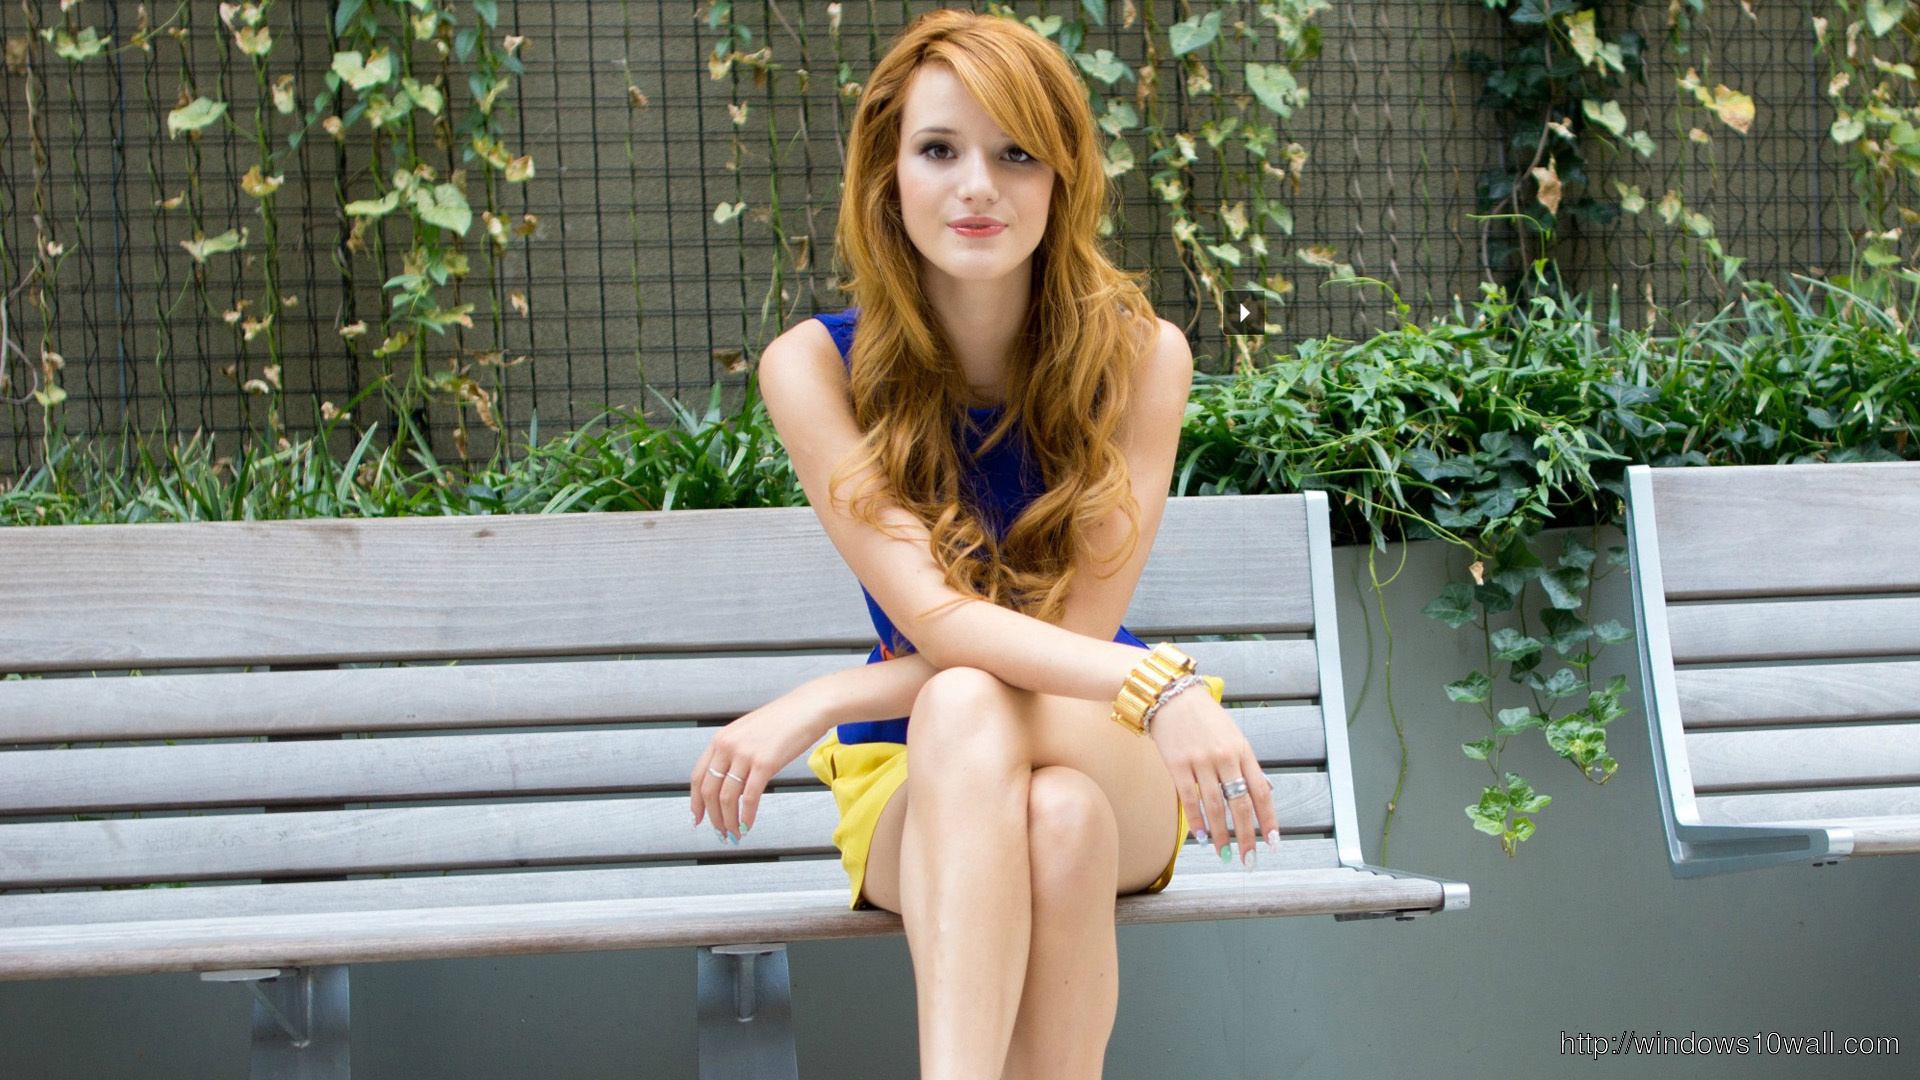 cute-bella-thorne-2014-wallpaper